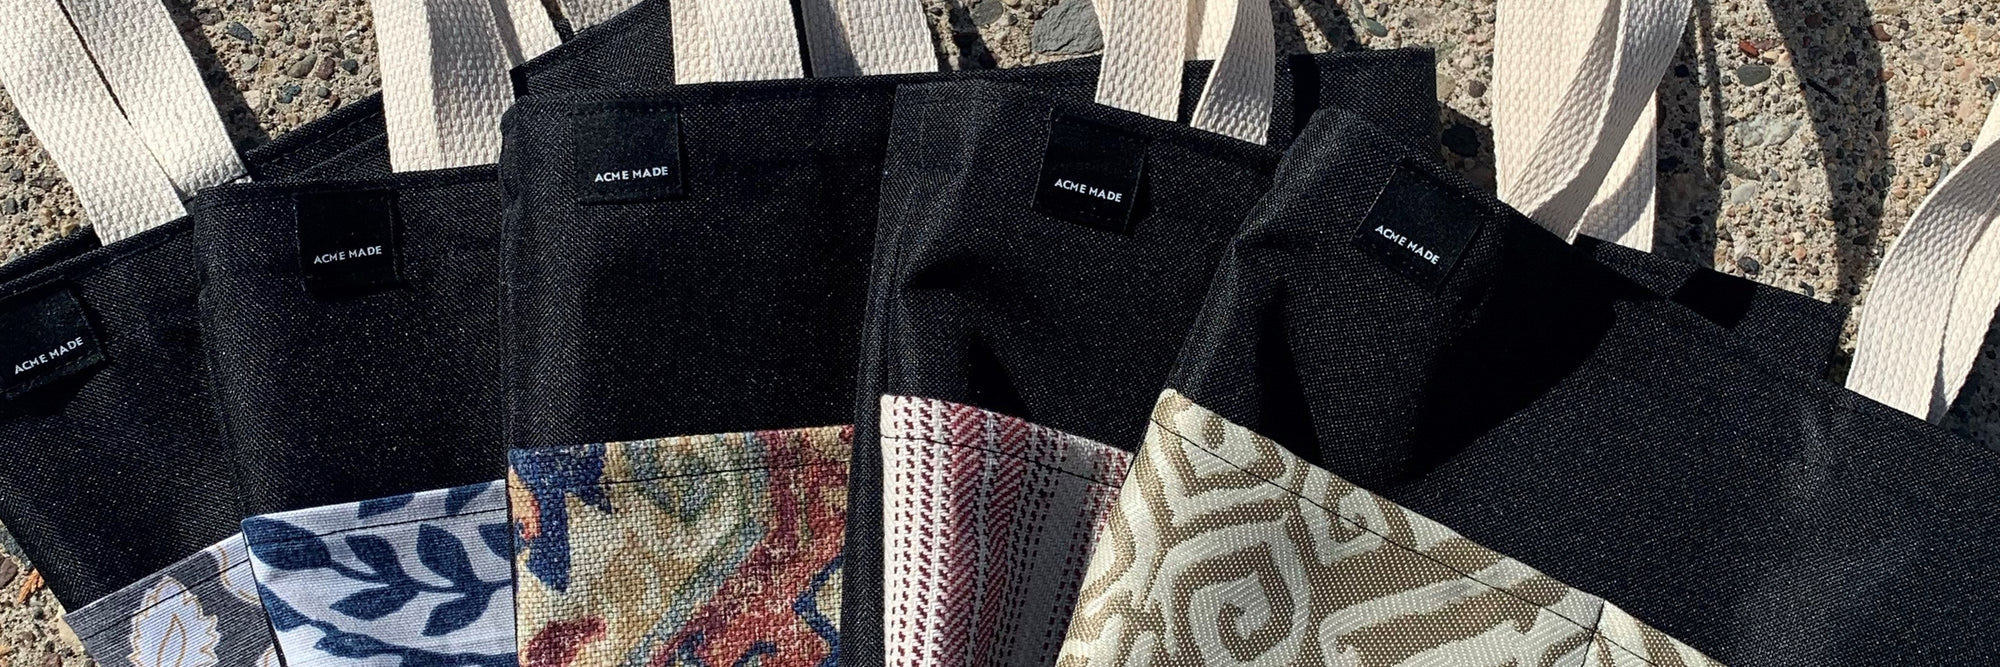 Upcycled Totes